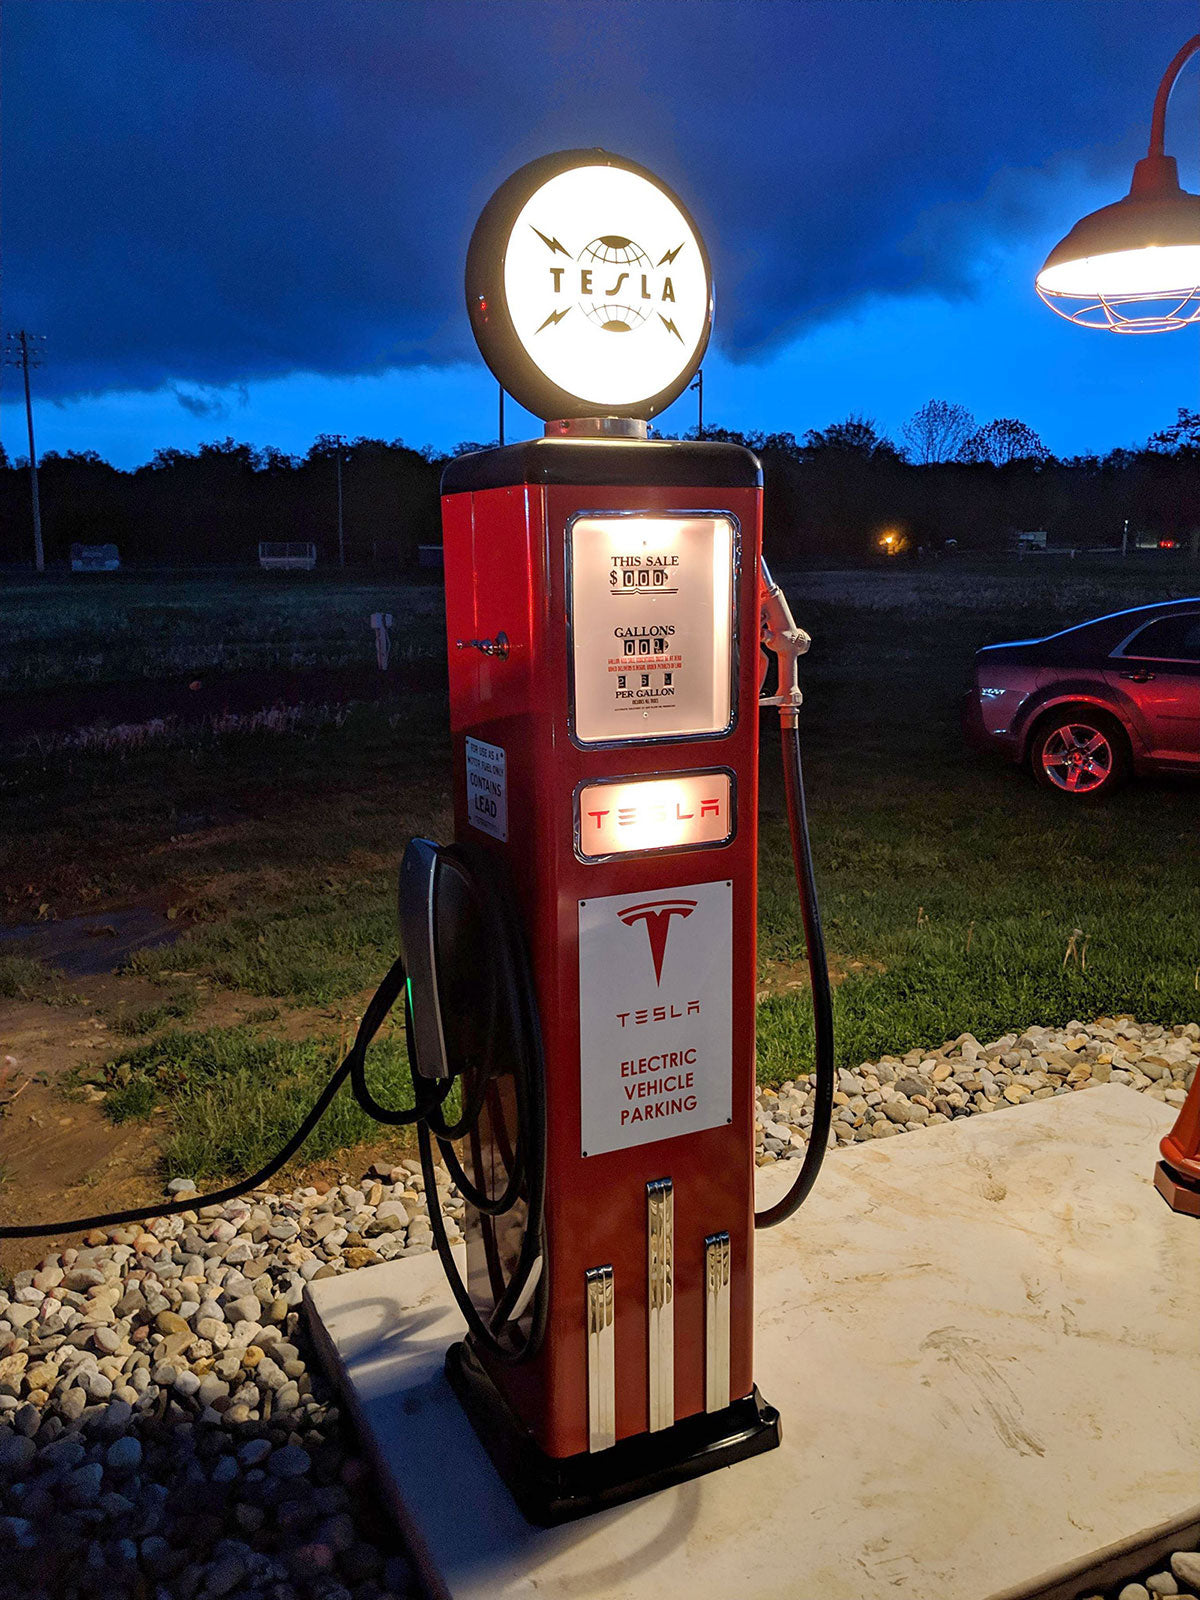 The retro styled Tesla Destination Charger at The Inside Scoop.